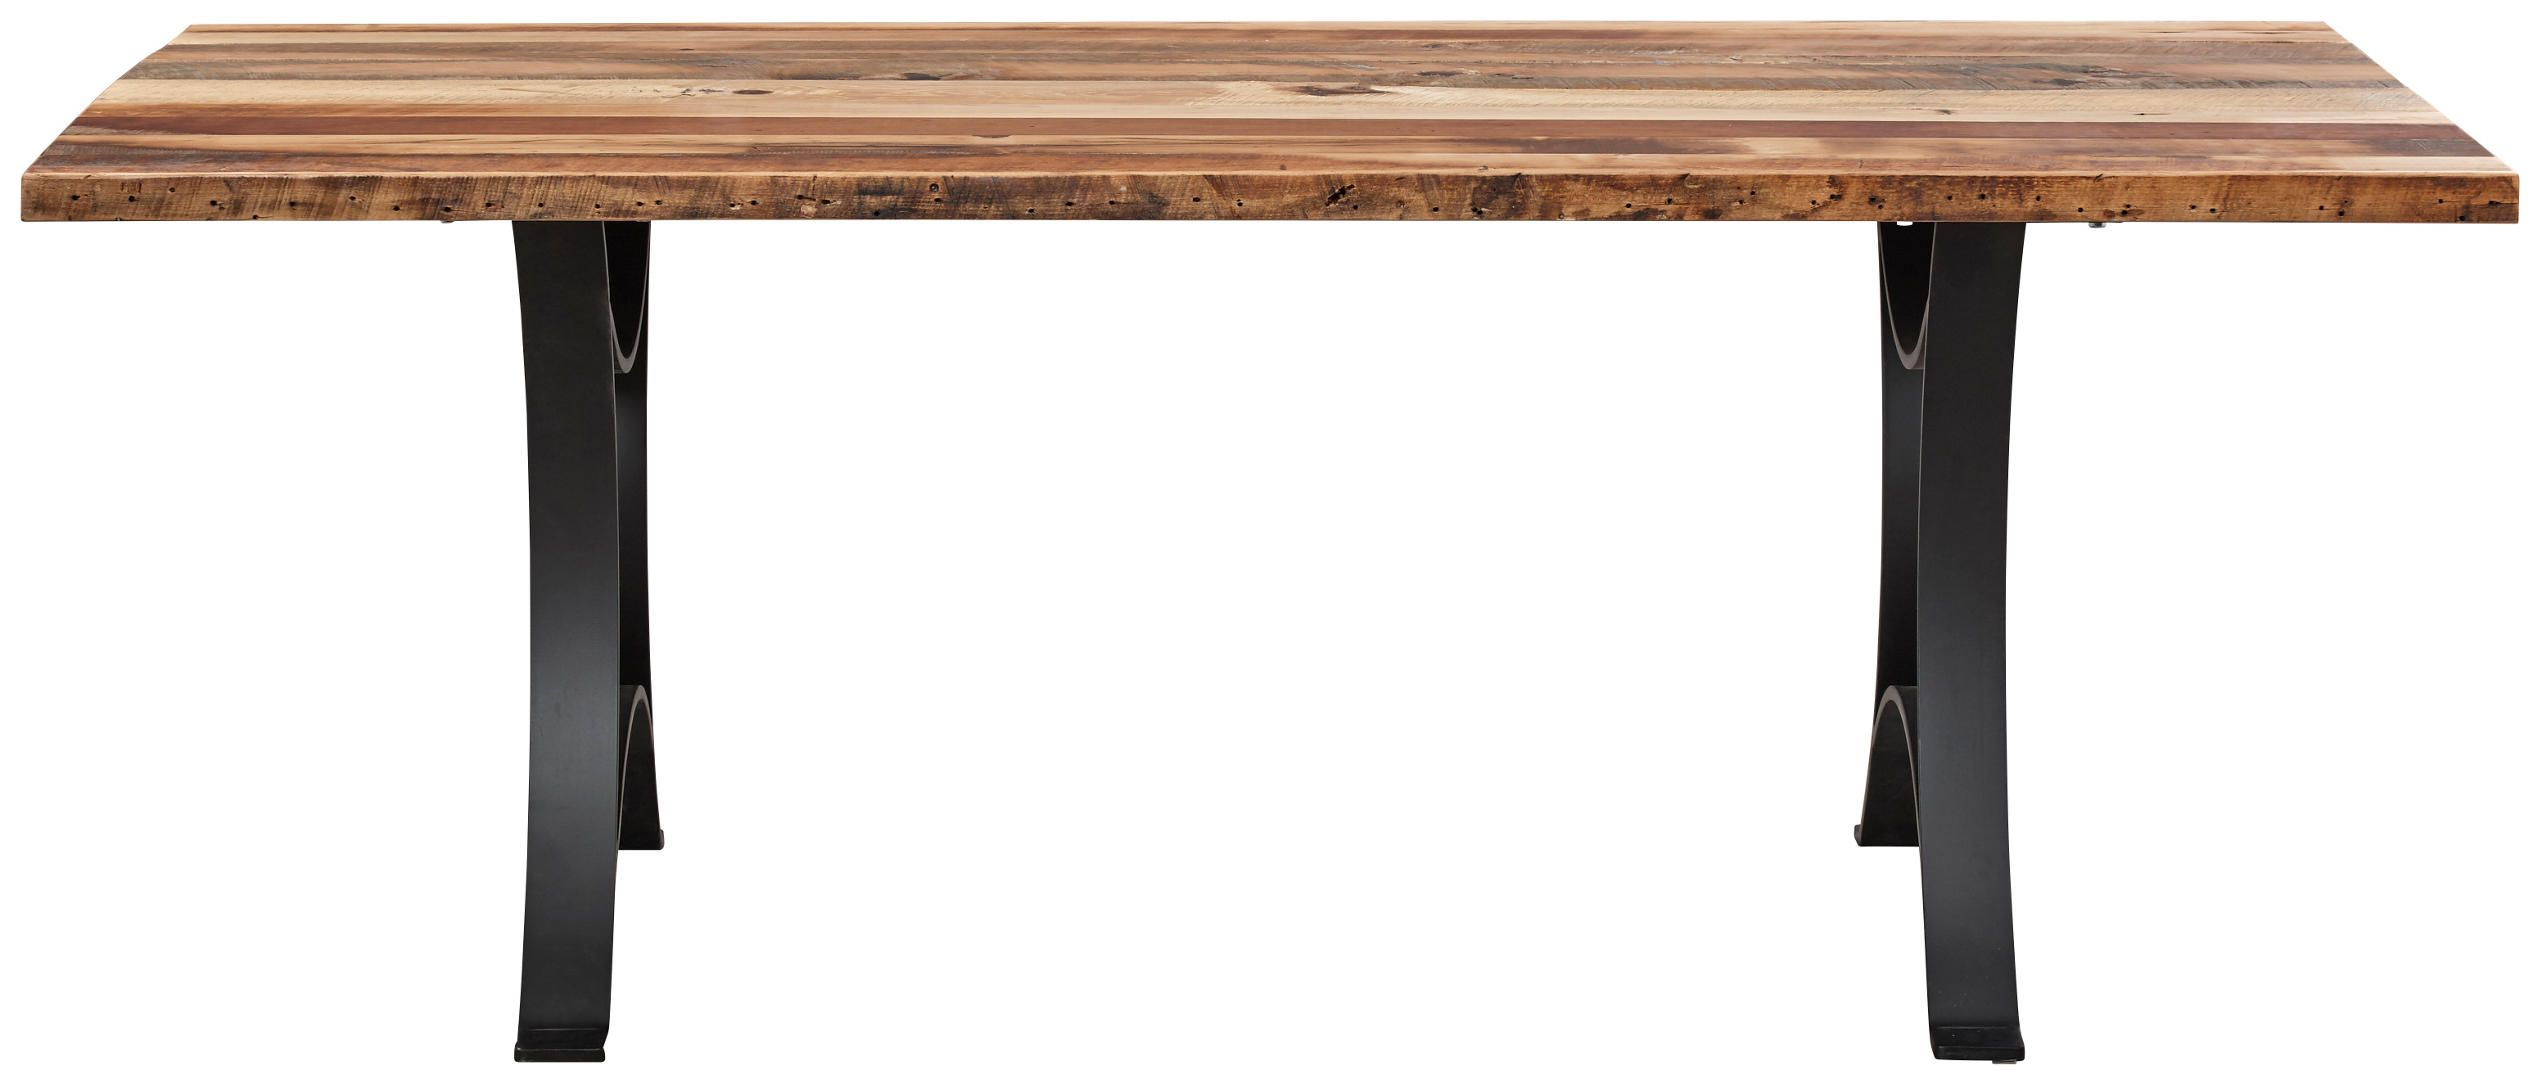 The Authentics Dining Table Is Constructed In Reclaimed Barnwood